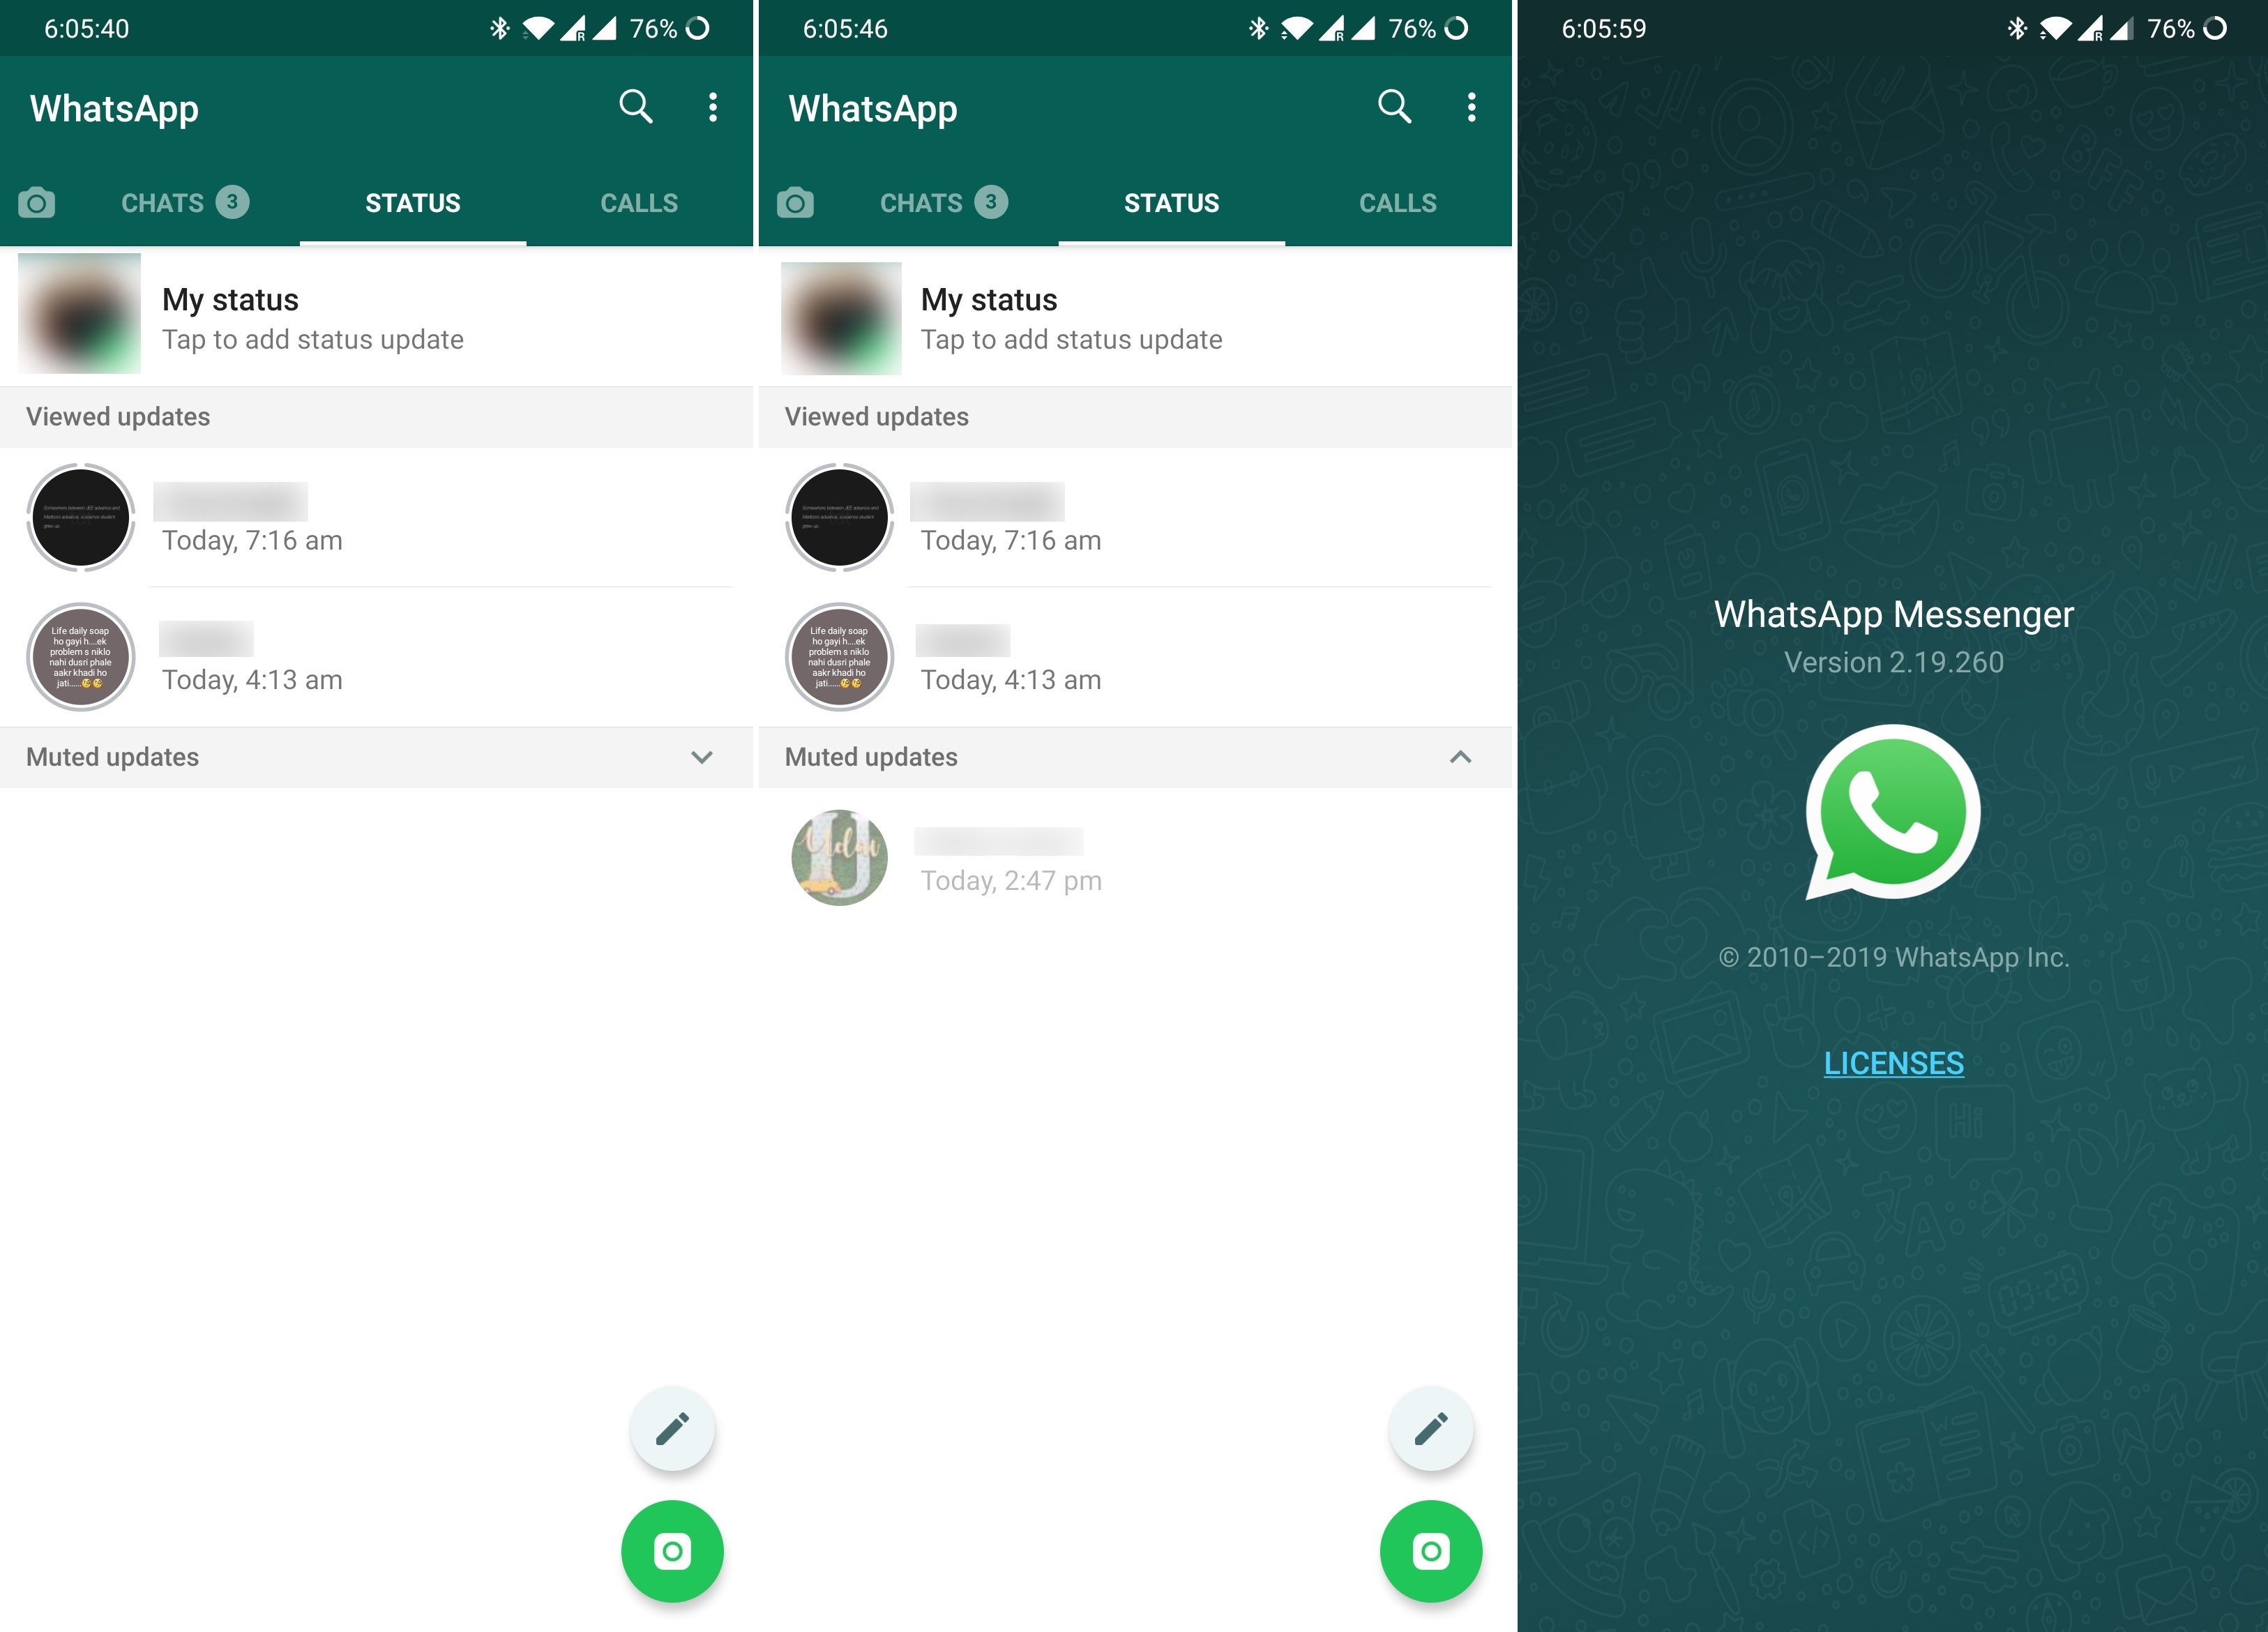 Whatsapp Now Allows Users To Hide Muted Status Updates